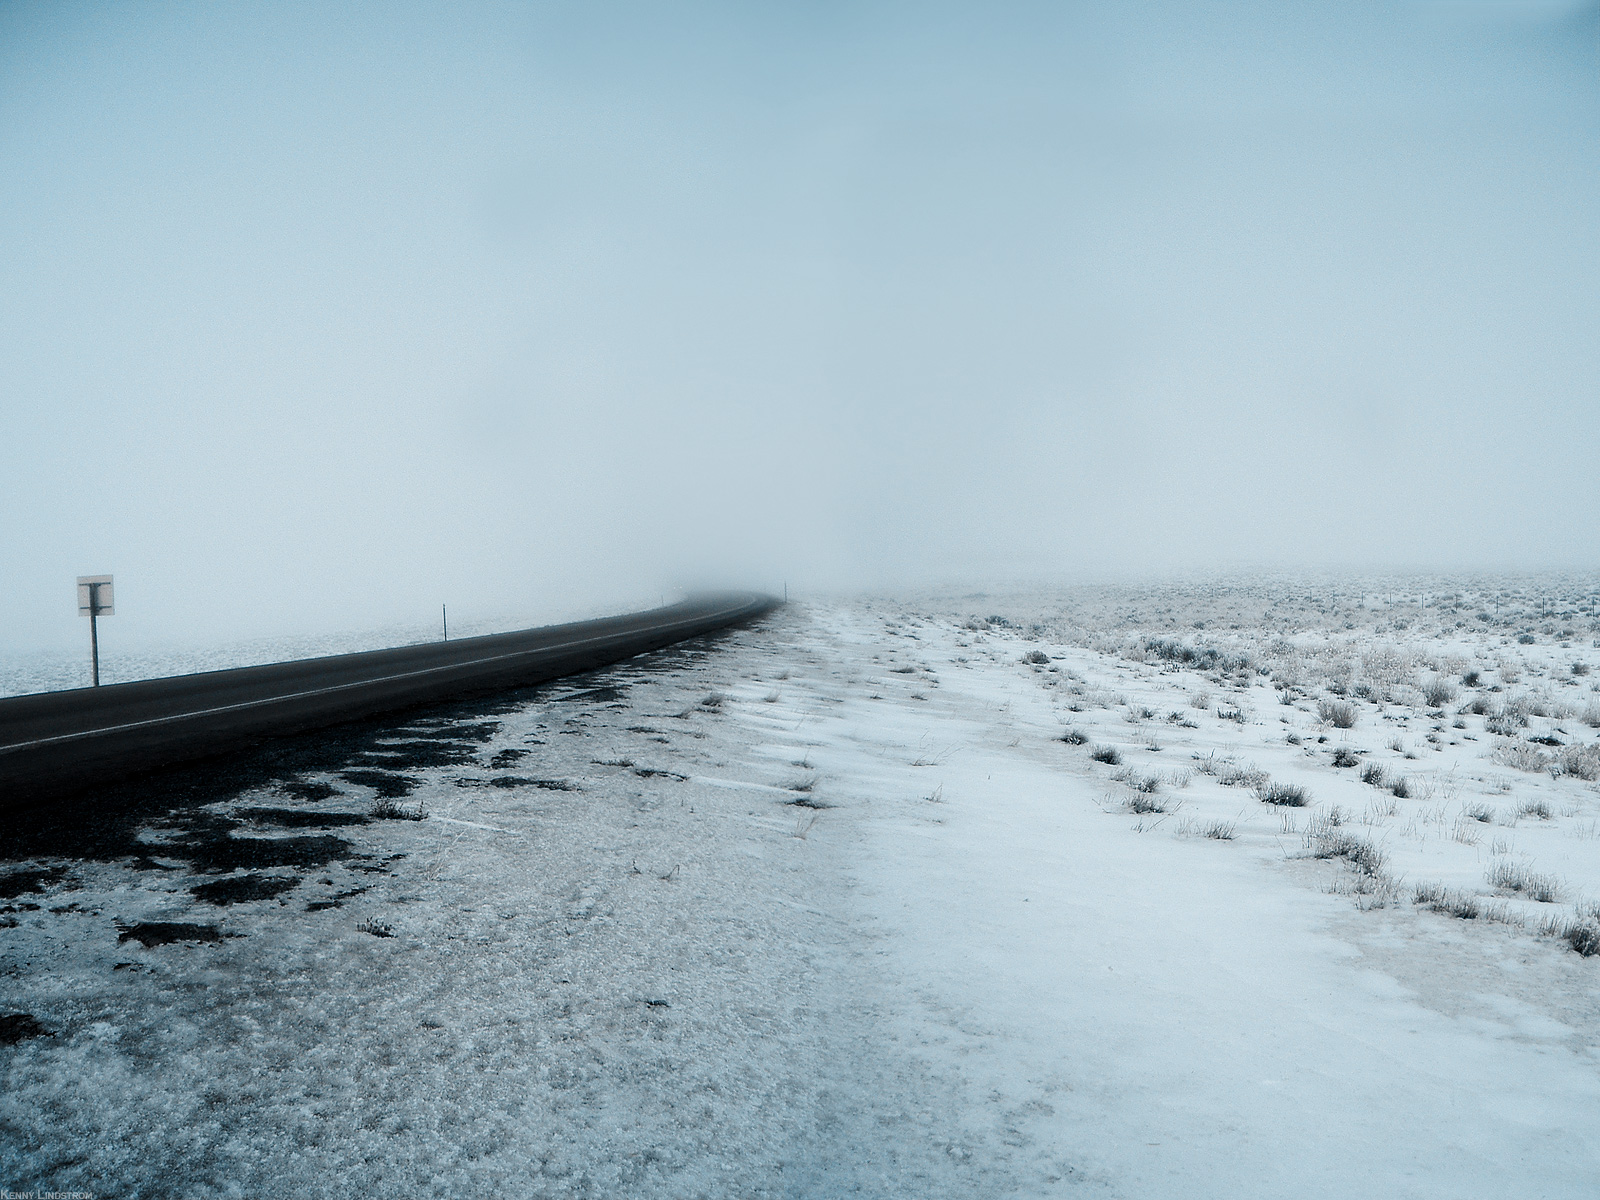 https://1.bp.blogspot.com/_TcwbPuj2SZ0/TEBJzqgo2dI/AAAAAAAAQ3c/MqfWJnitW2w/s1600/Winter-Road-Desktop-Background.jpg